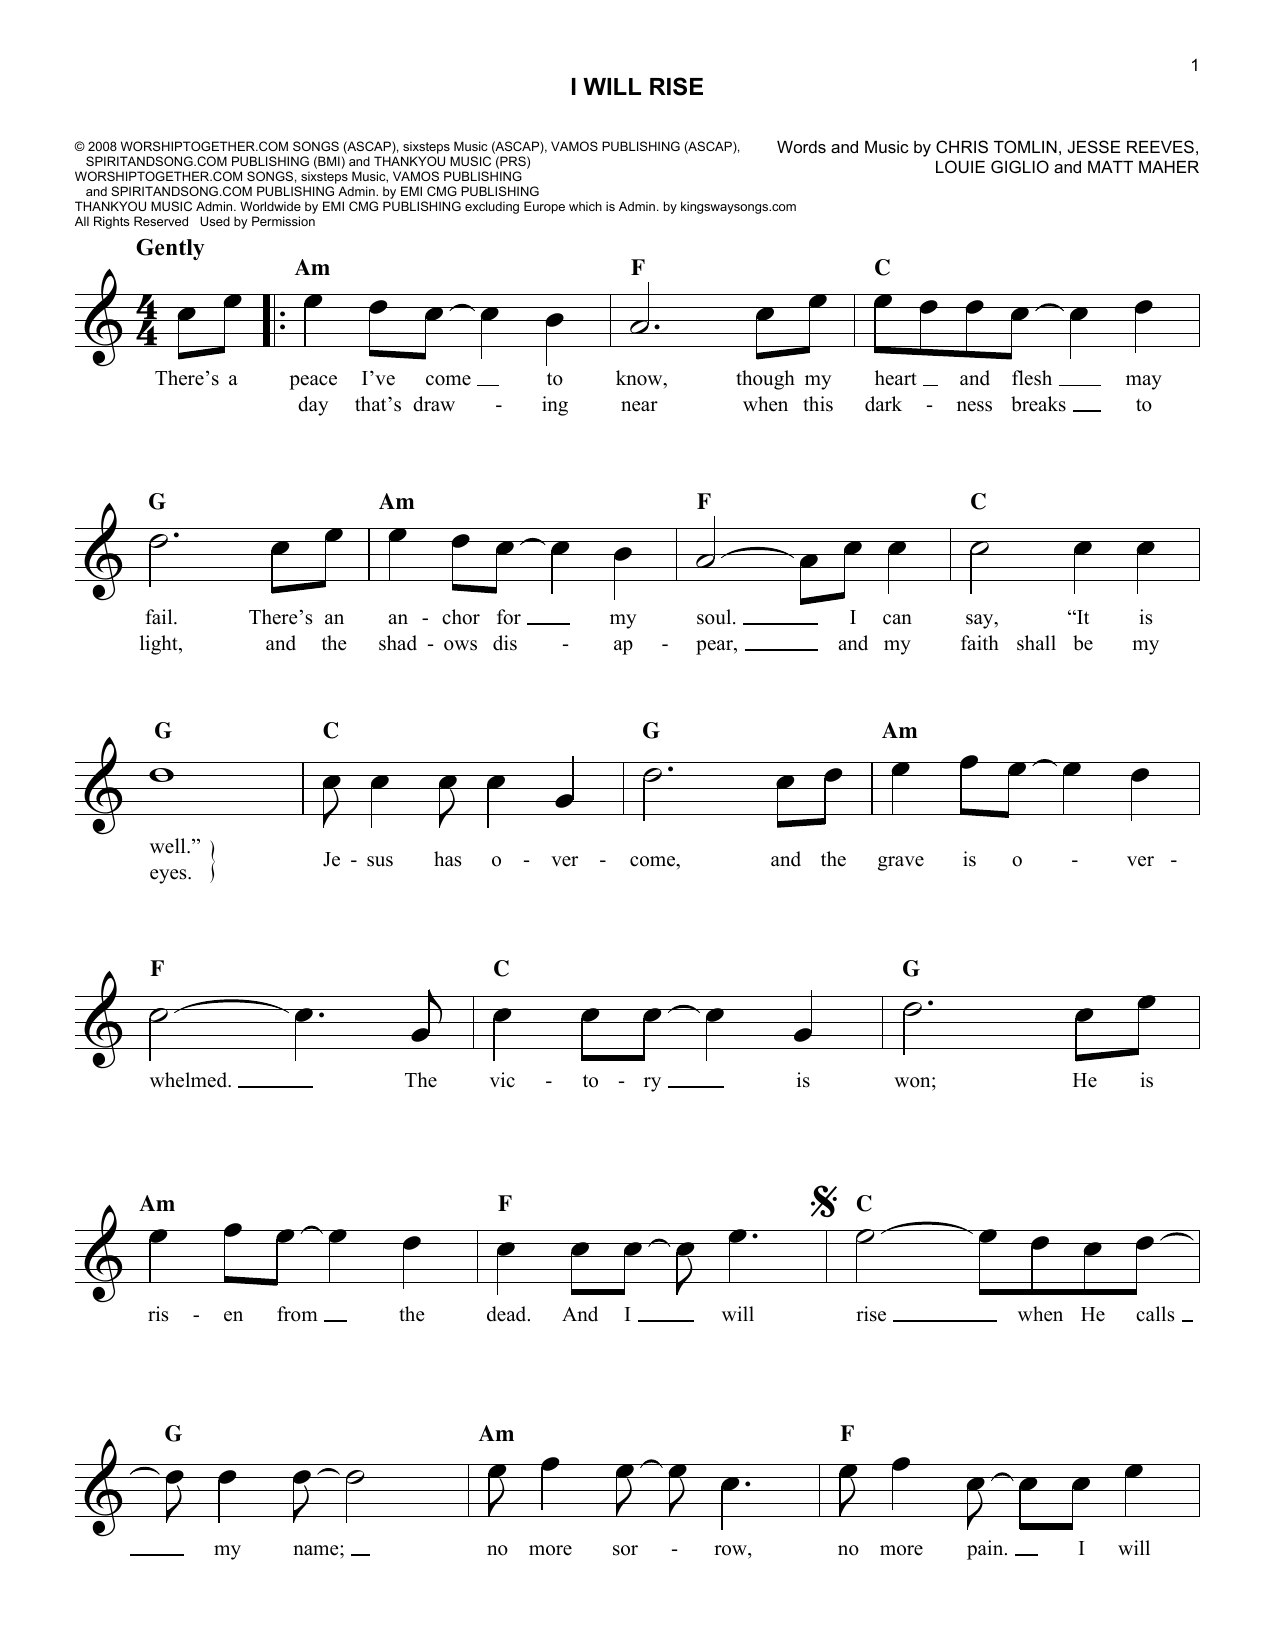 I Will Rise Sheet Music